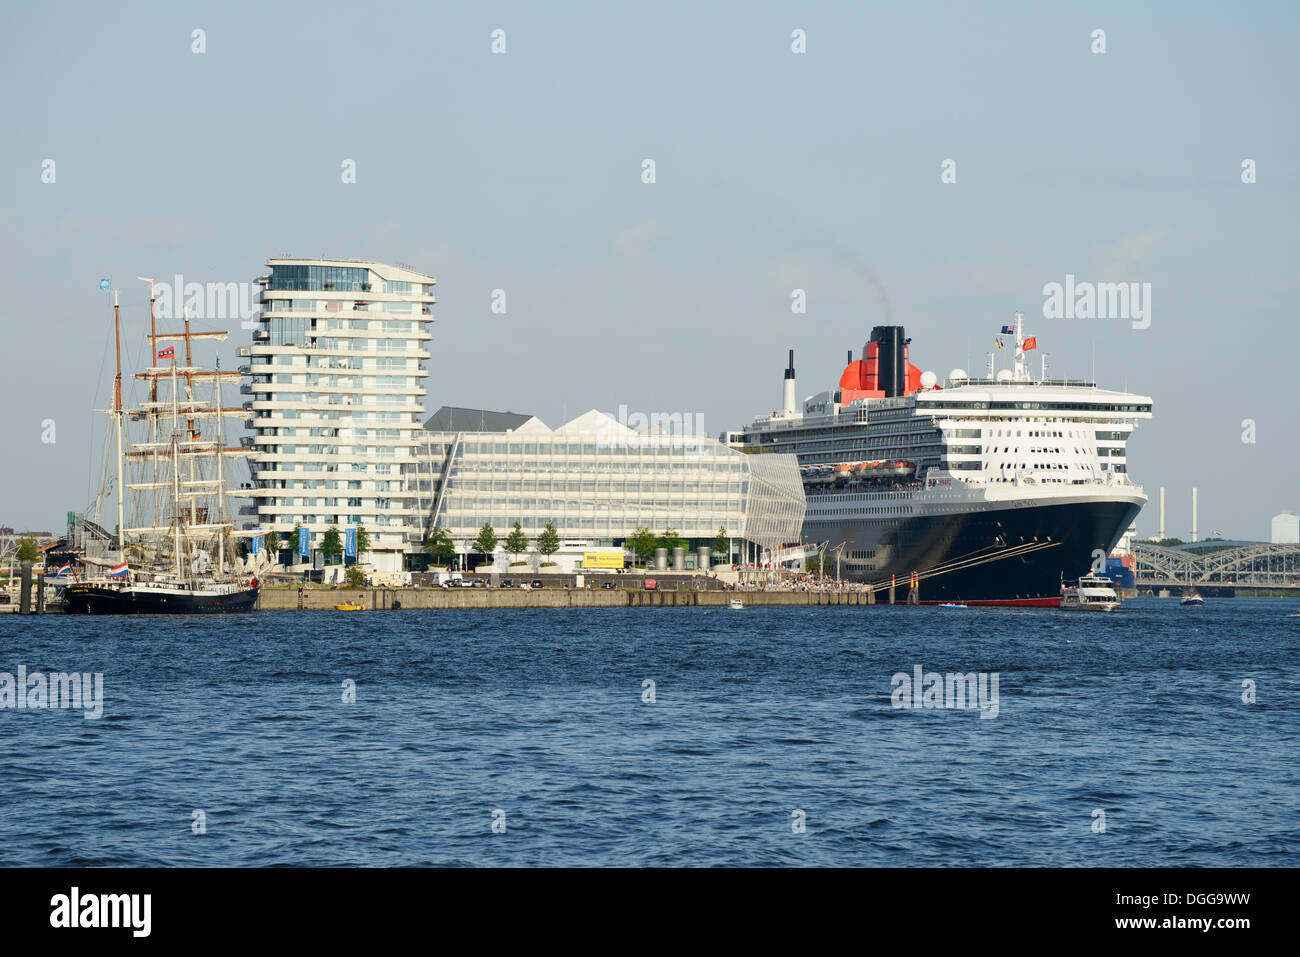 RMS Queen Mary 2 visiting during Hamburg Cruise Days in the Port of Hamburg, with the Marco Polo Tower and the Unilever Stock Photo